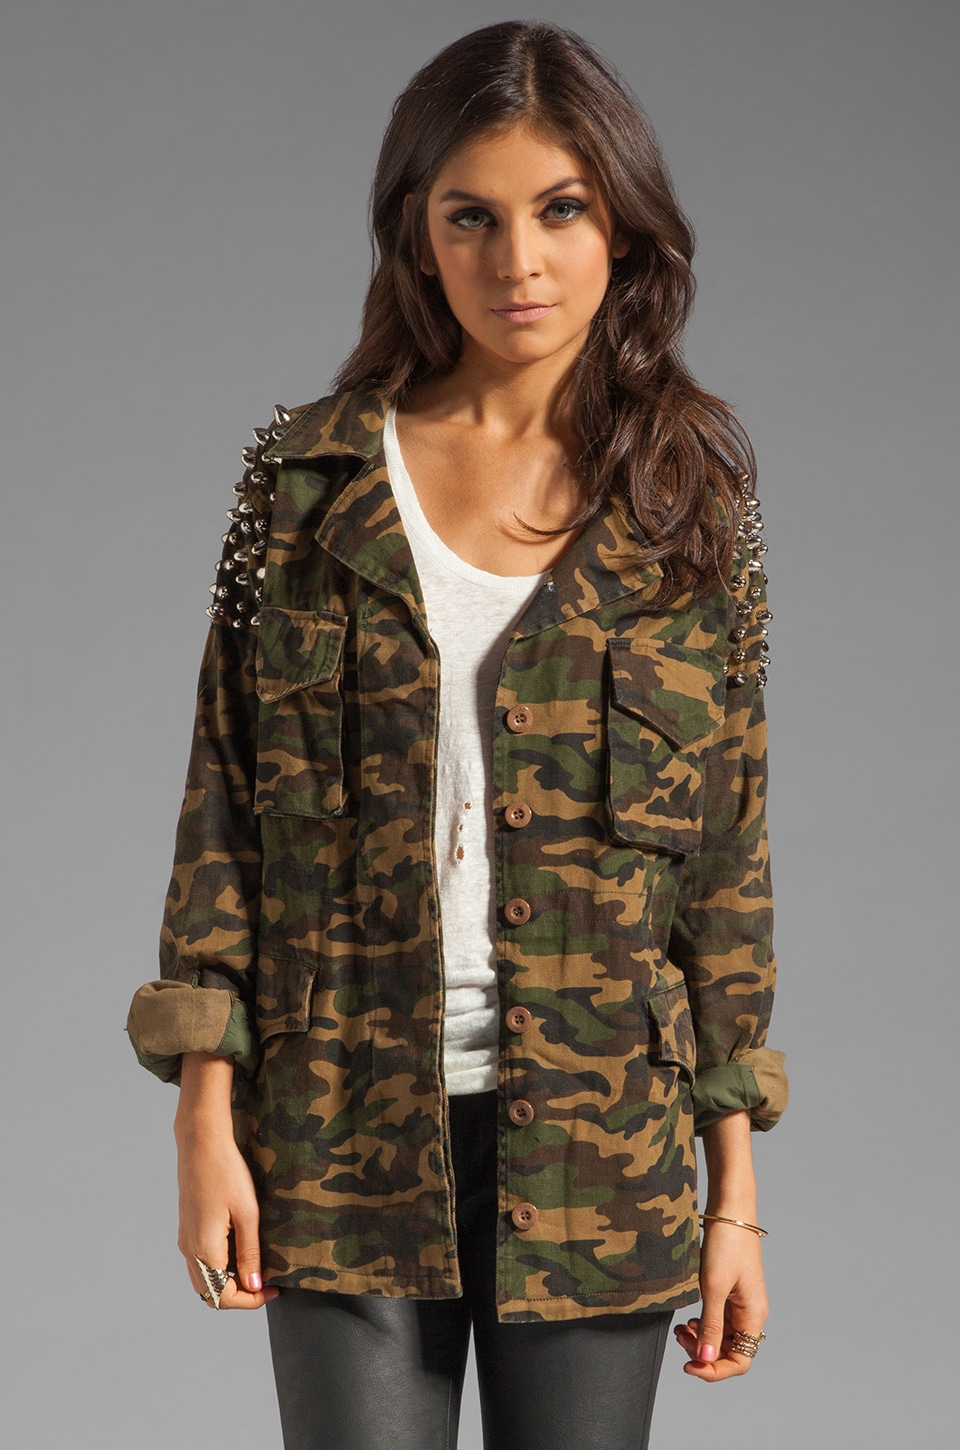 UNIF AWOL Studded Jacket in Camo